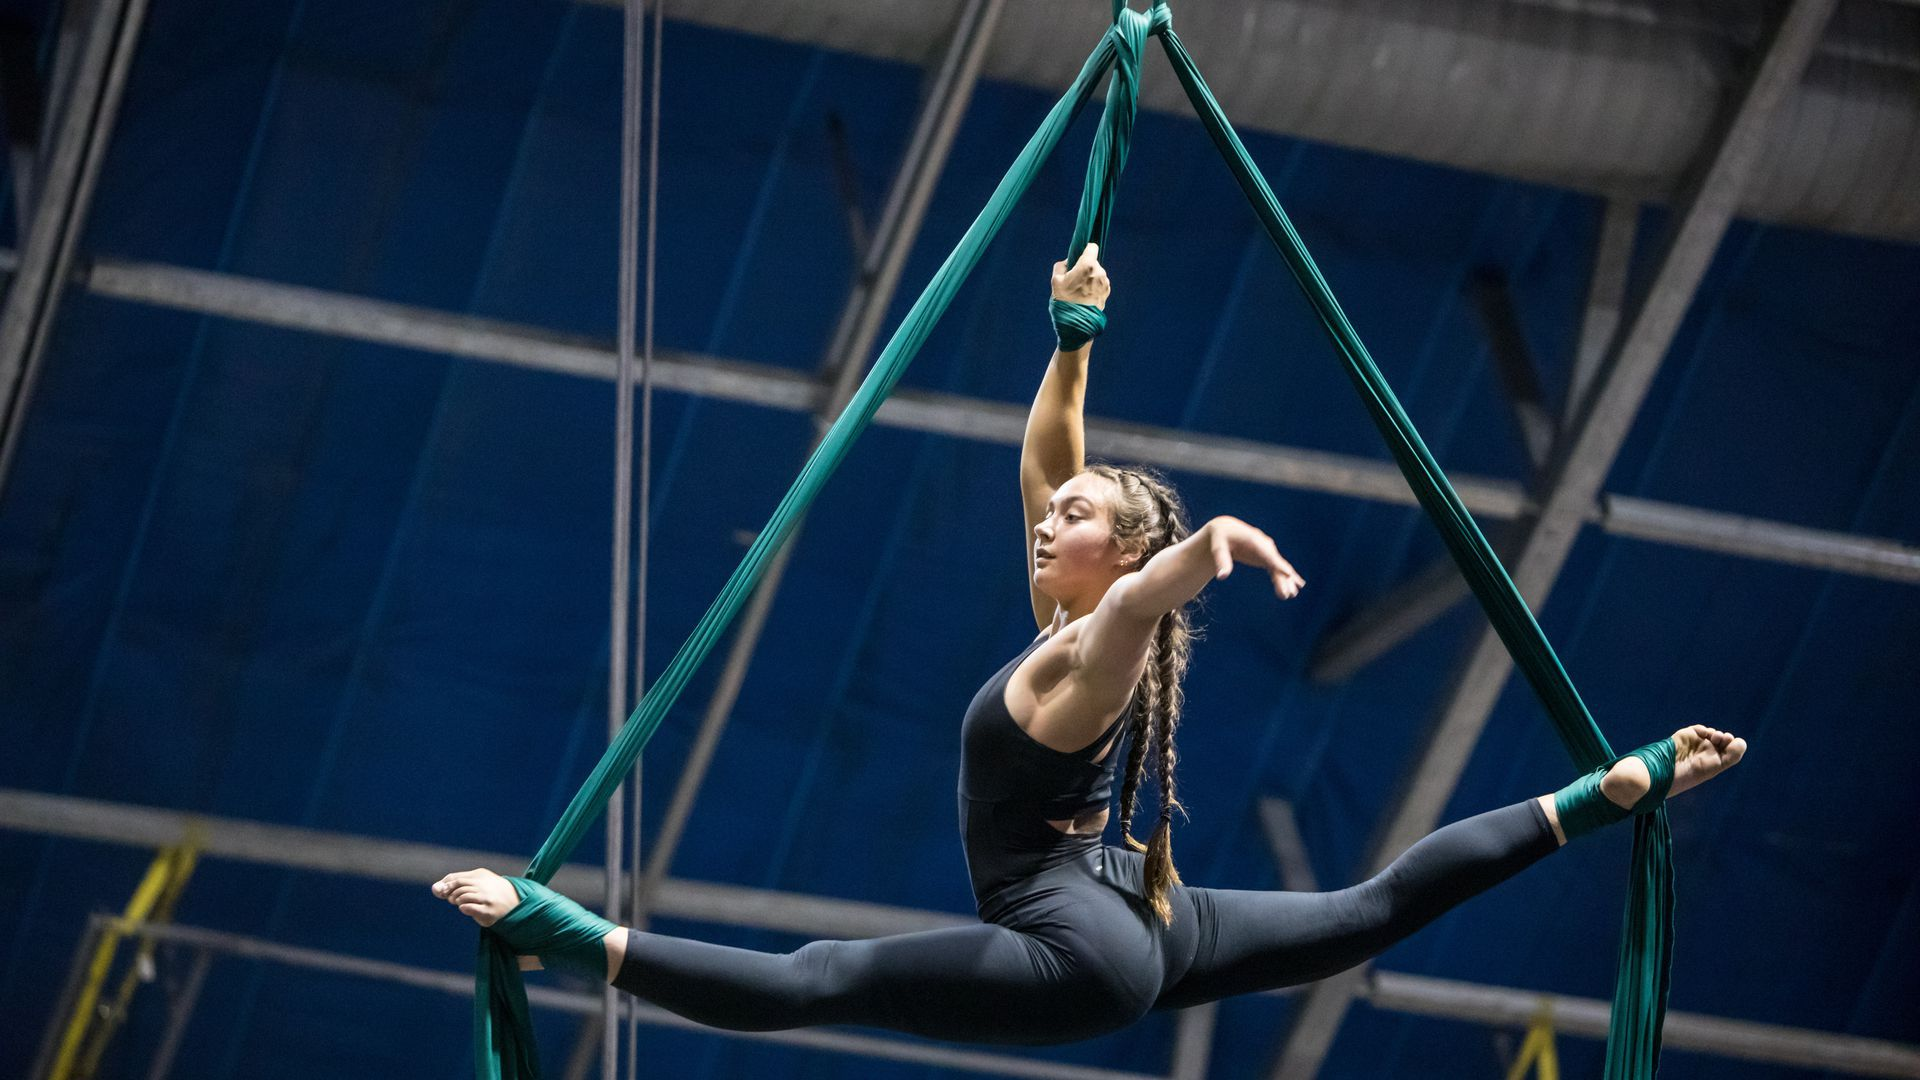 A photo of a young woman doing the splits in the air, wrapped in silk ropes.